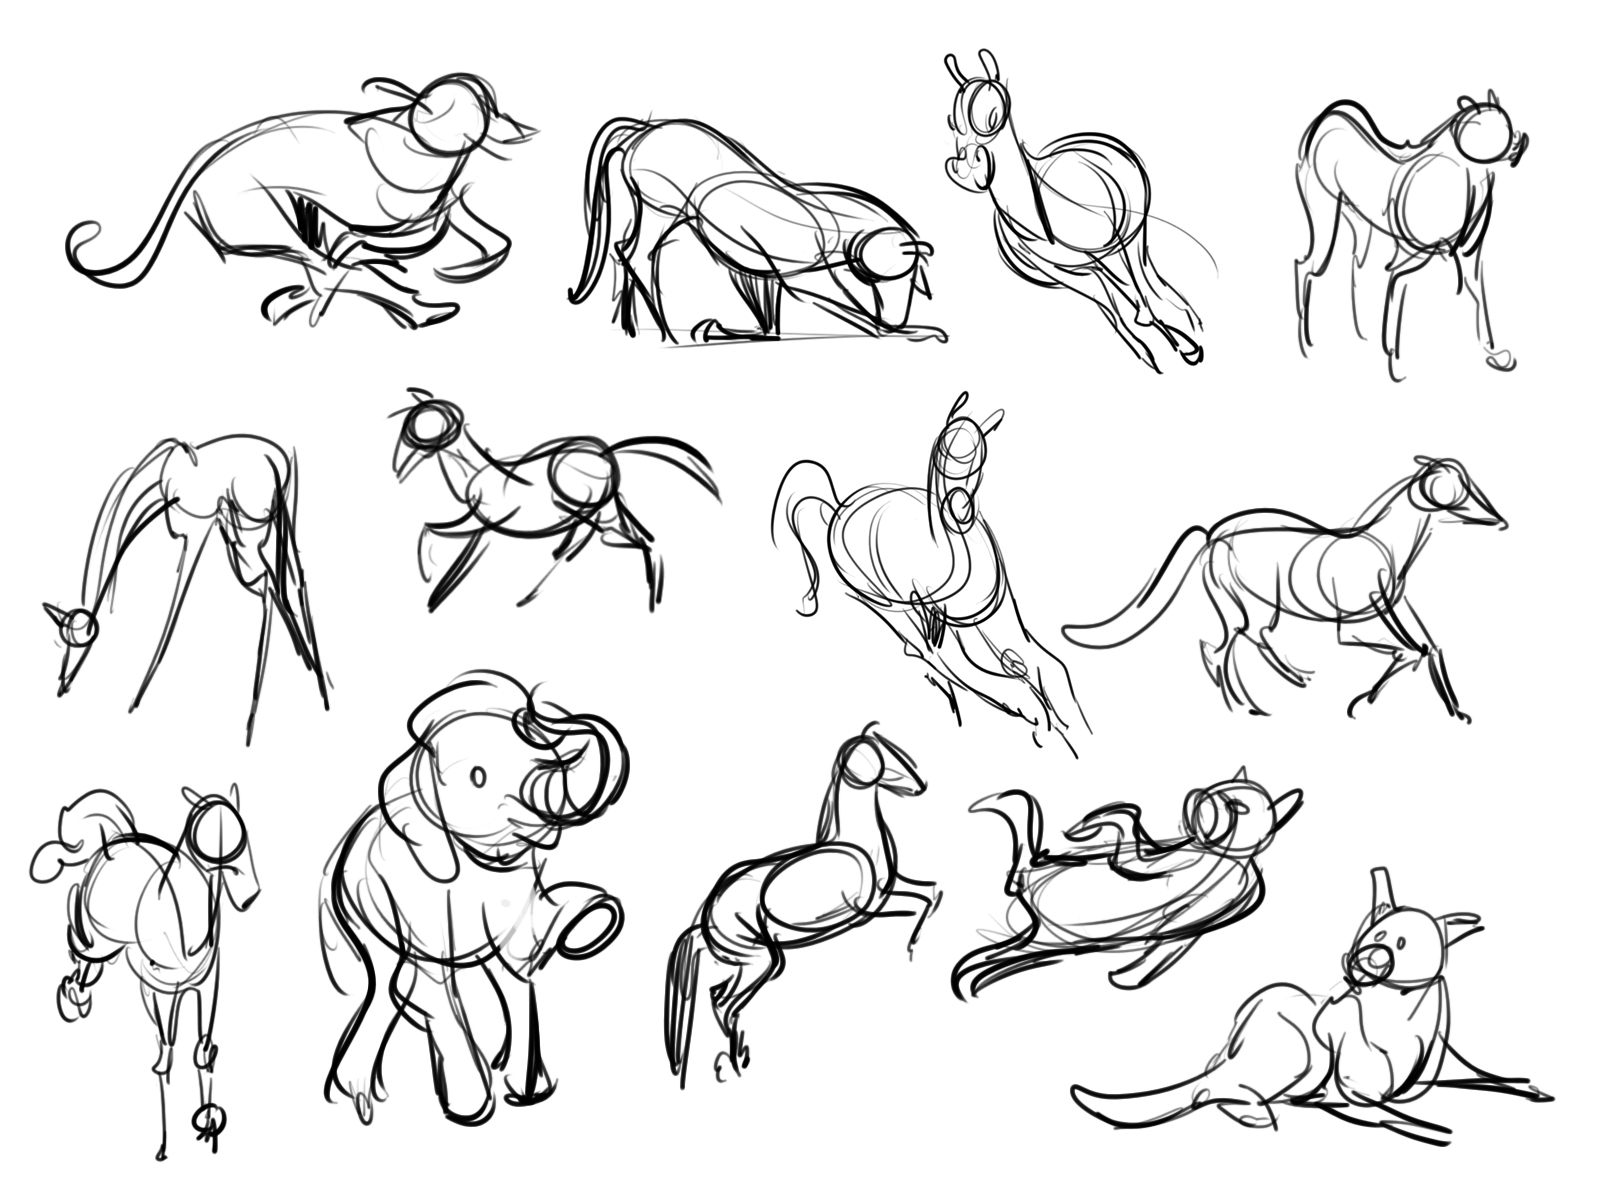 30 Second Animal Gestures